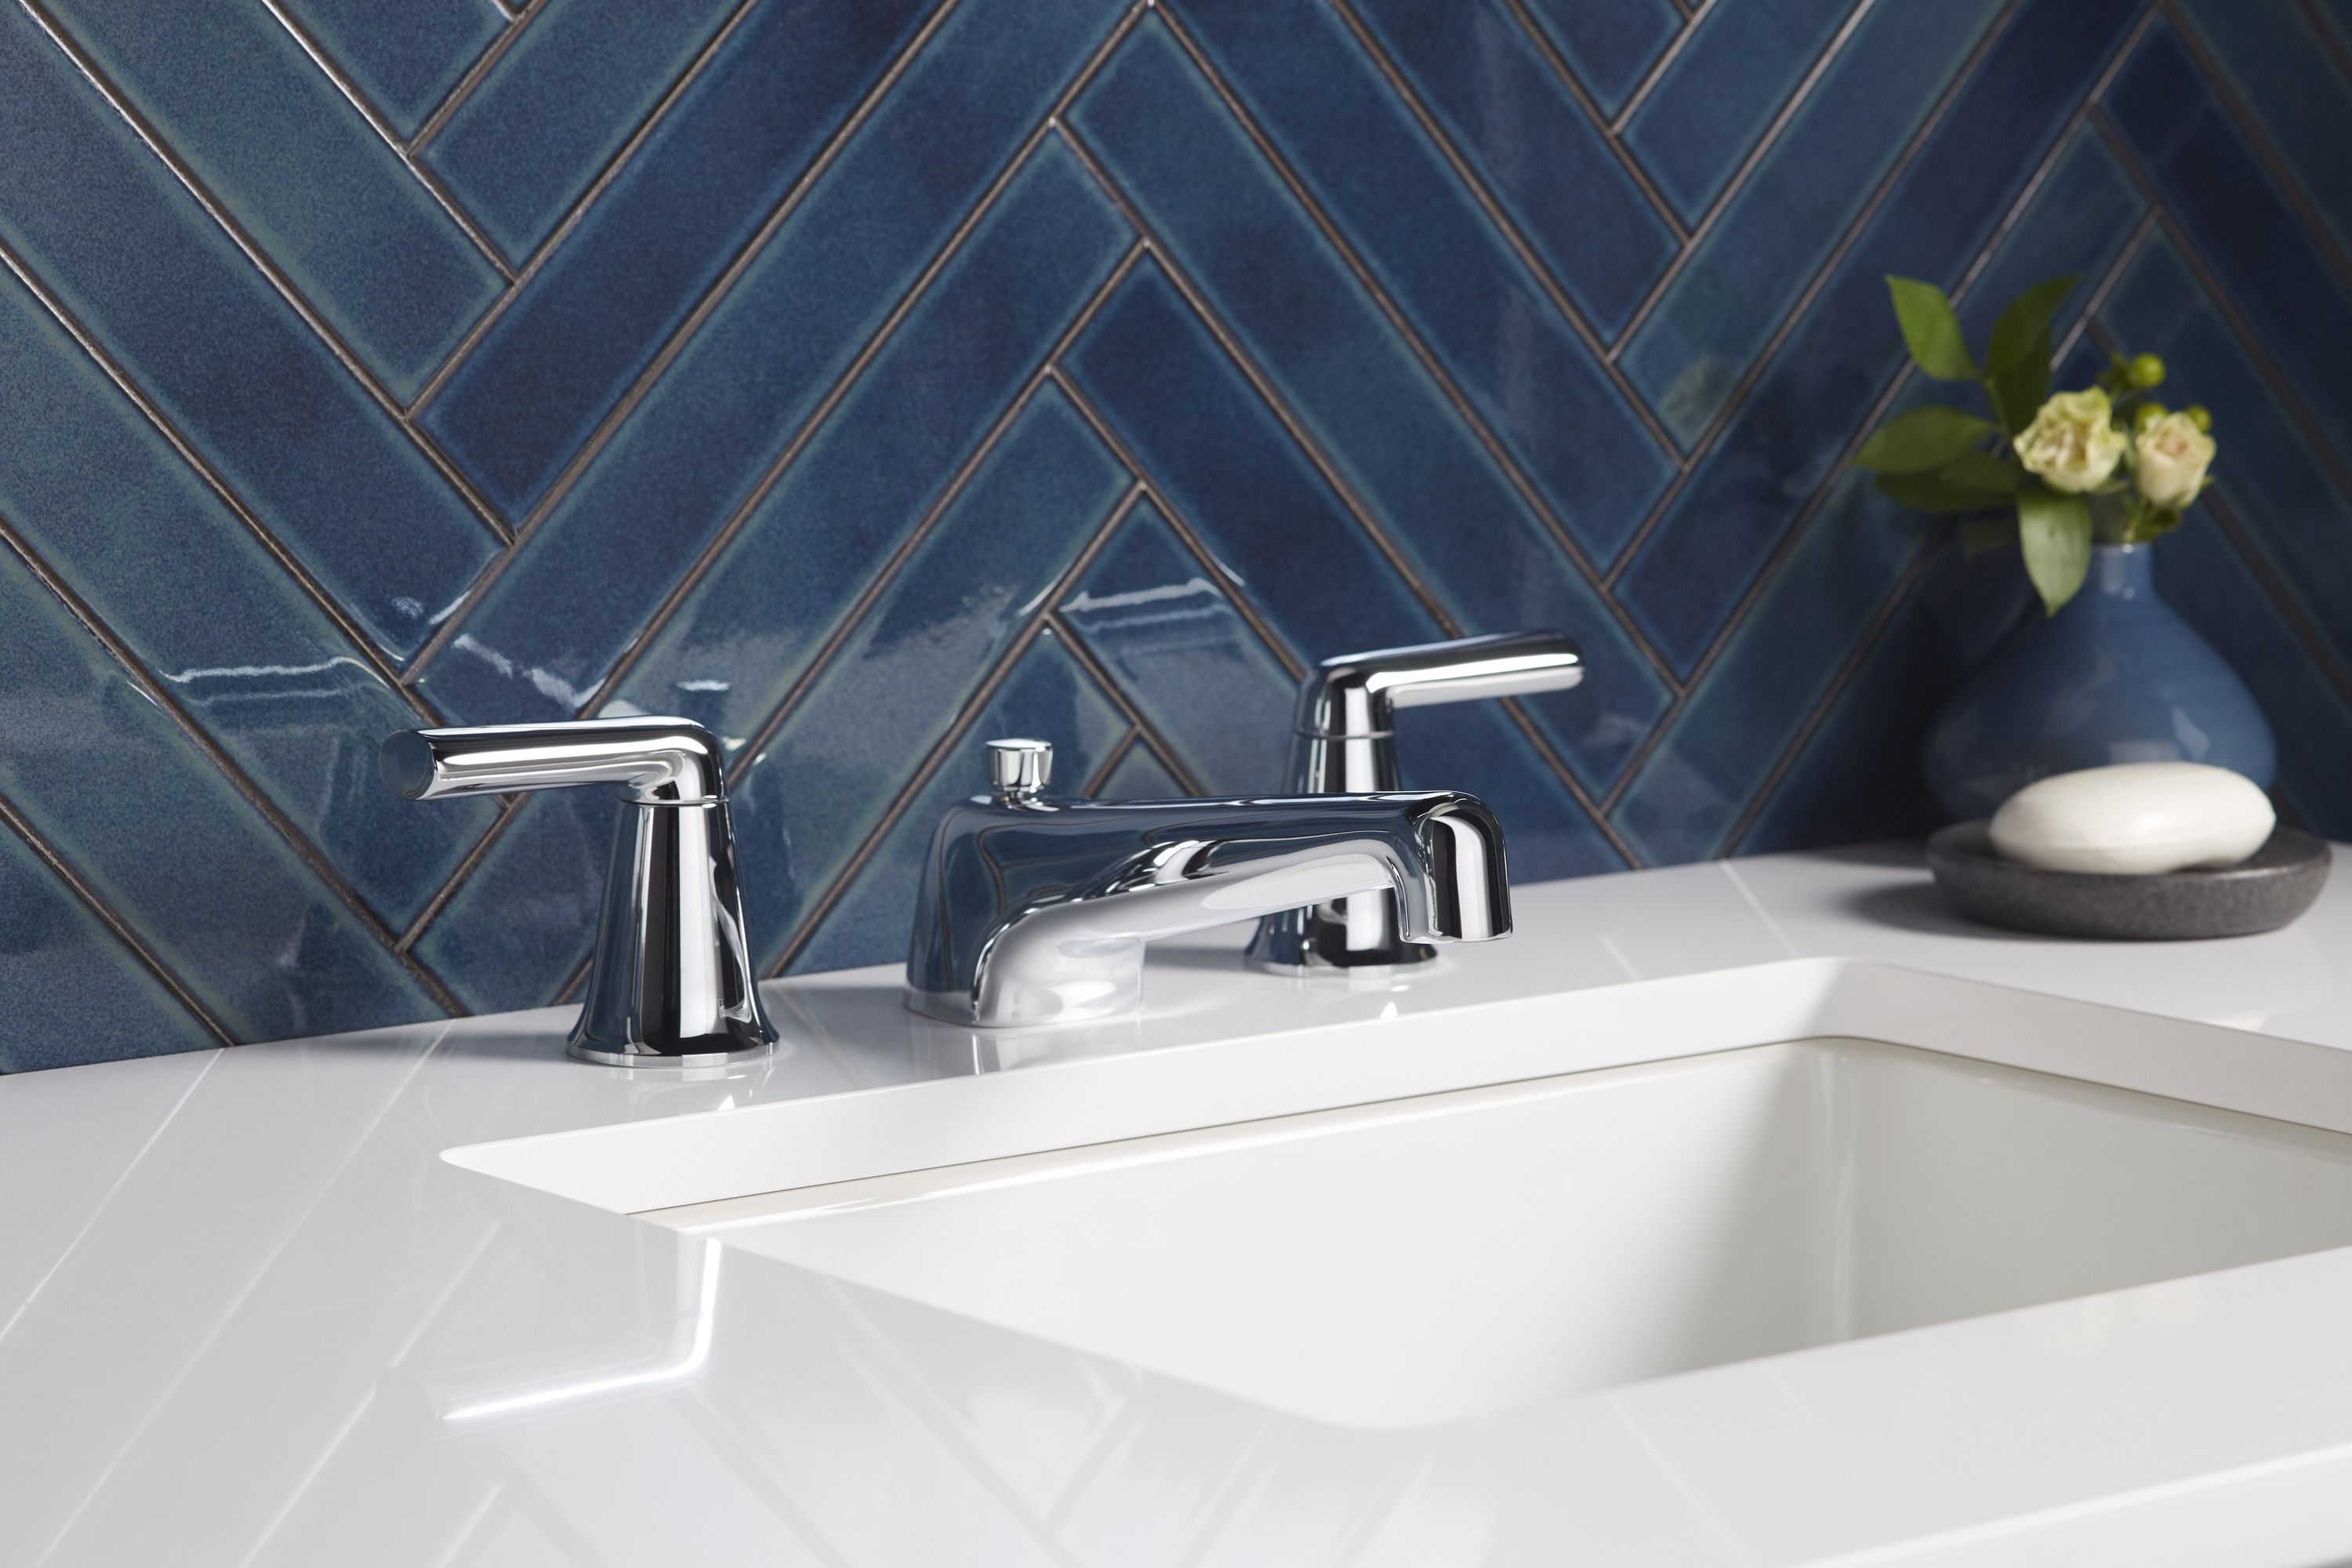 Counterpoint Sink Faucet with Lever Handles | COUNTERPOINT | BY ...